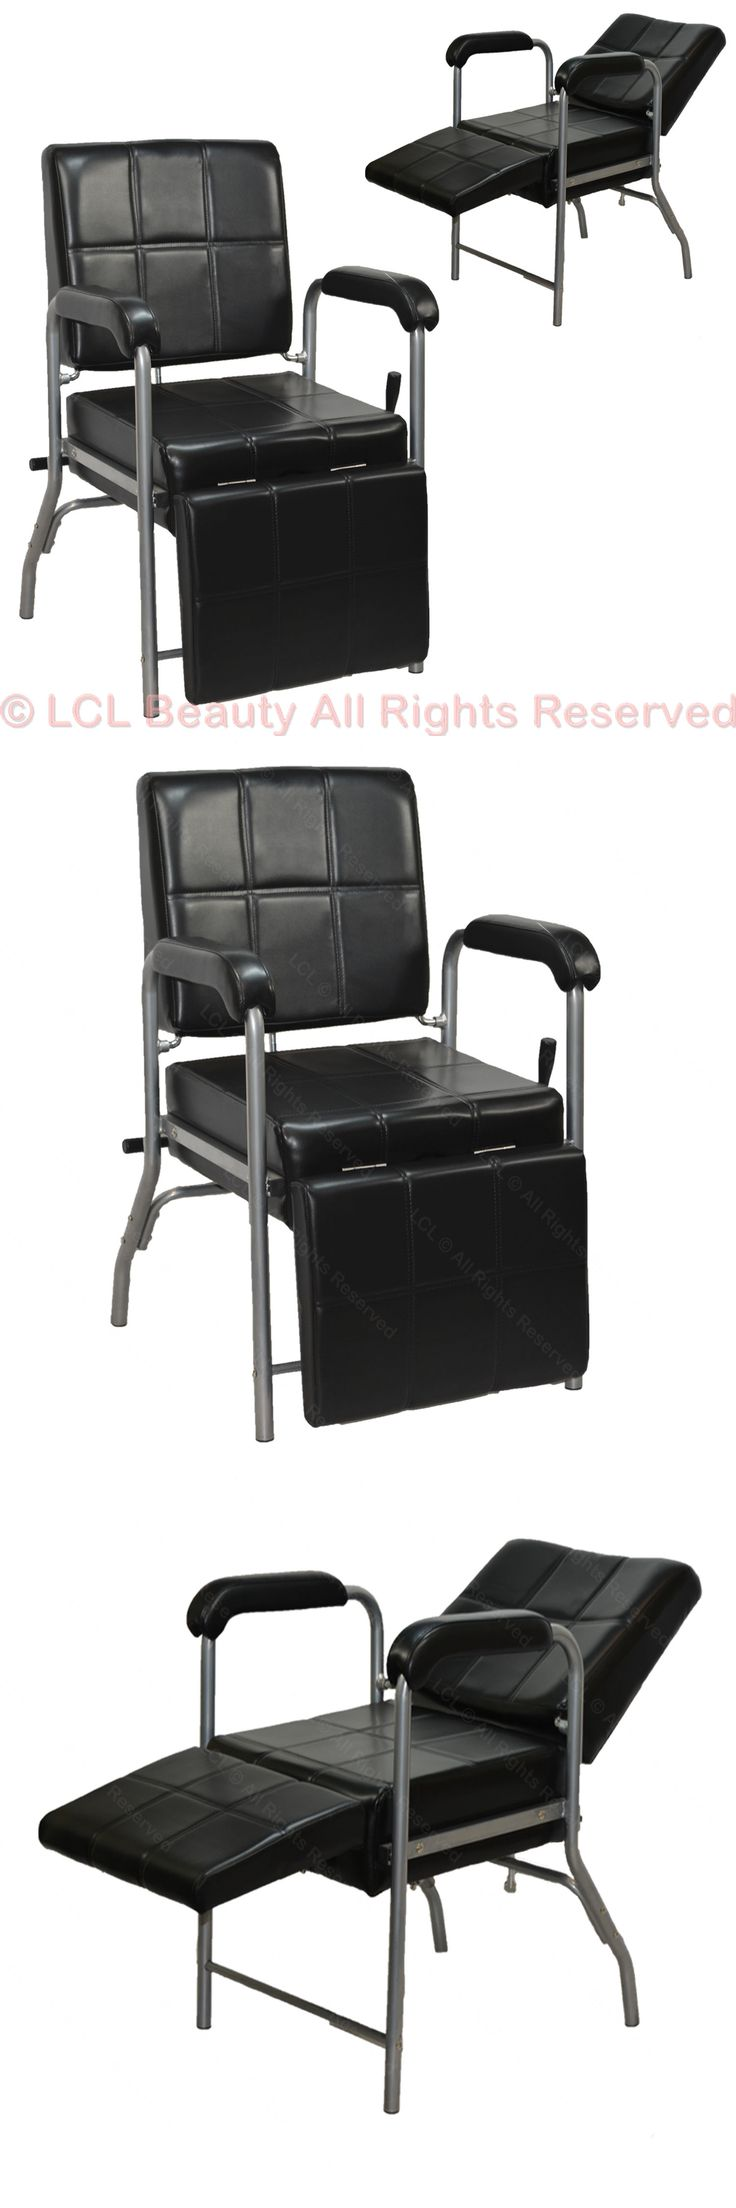 Backwash Units and Shampoo Bowls: Reclining Shampoo Chair With Adjustable Leg Rest Barber Beauty Salon Equipment -> BUY IT NOW ONLY: $124.88 on eBay!